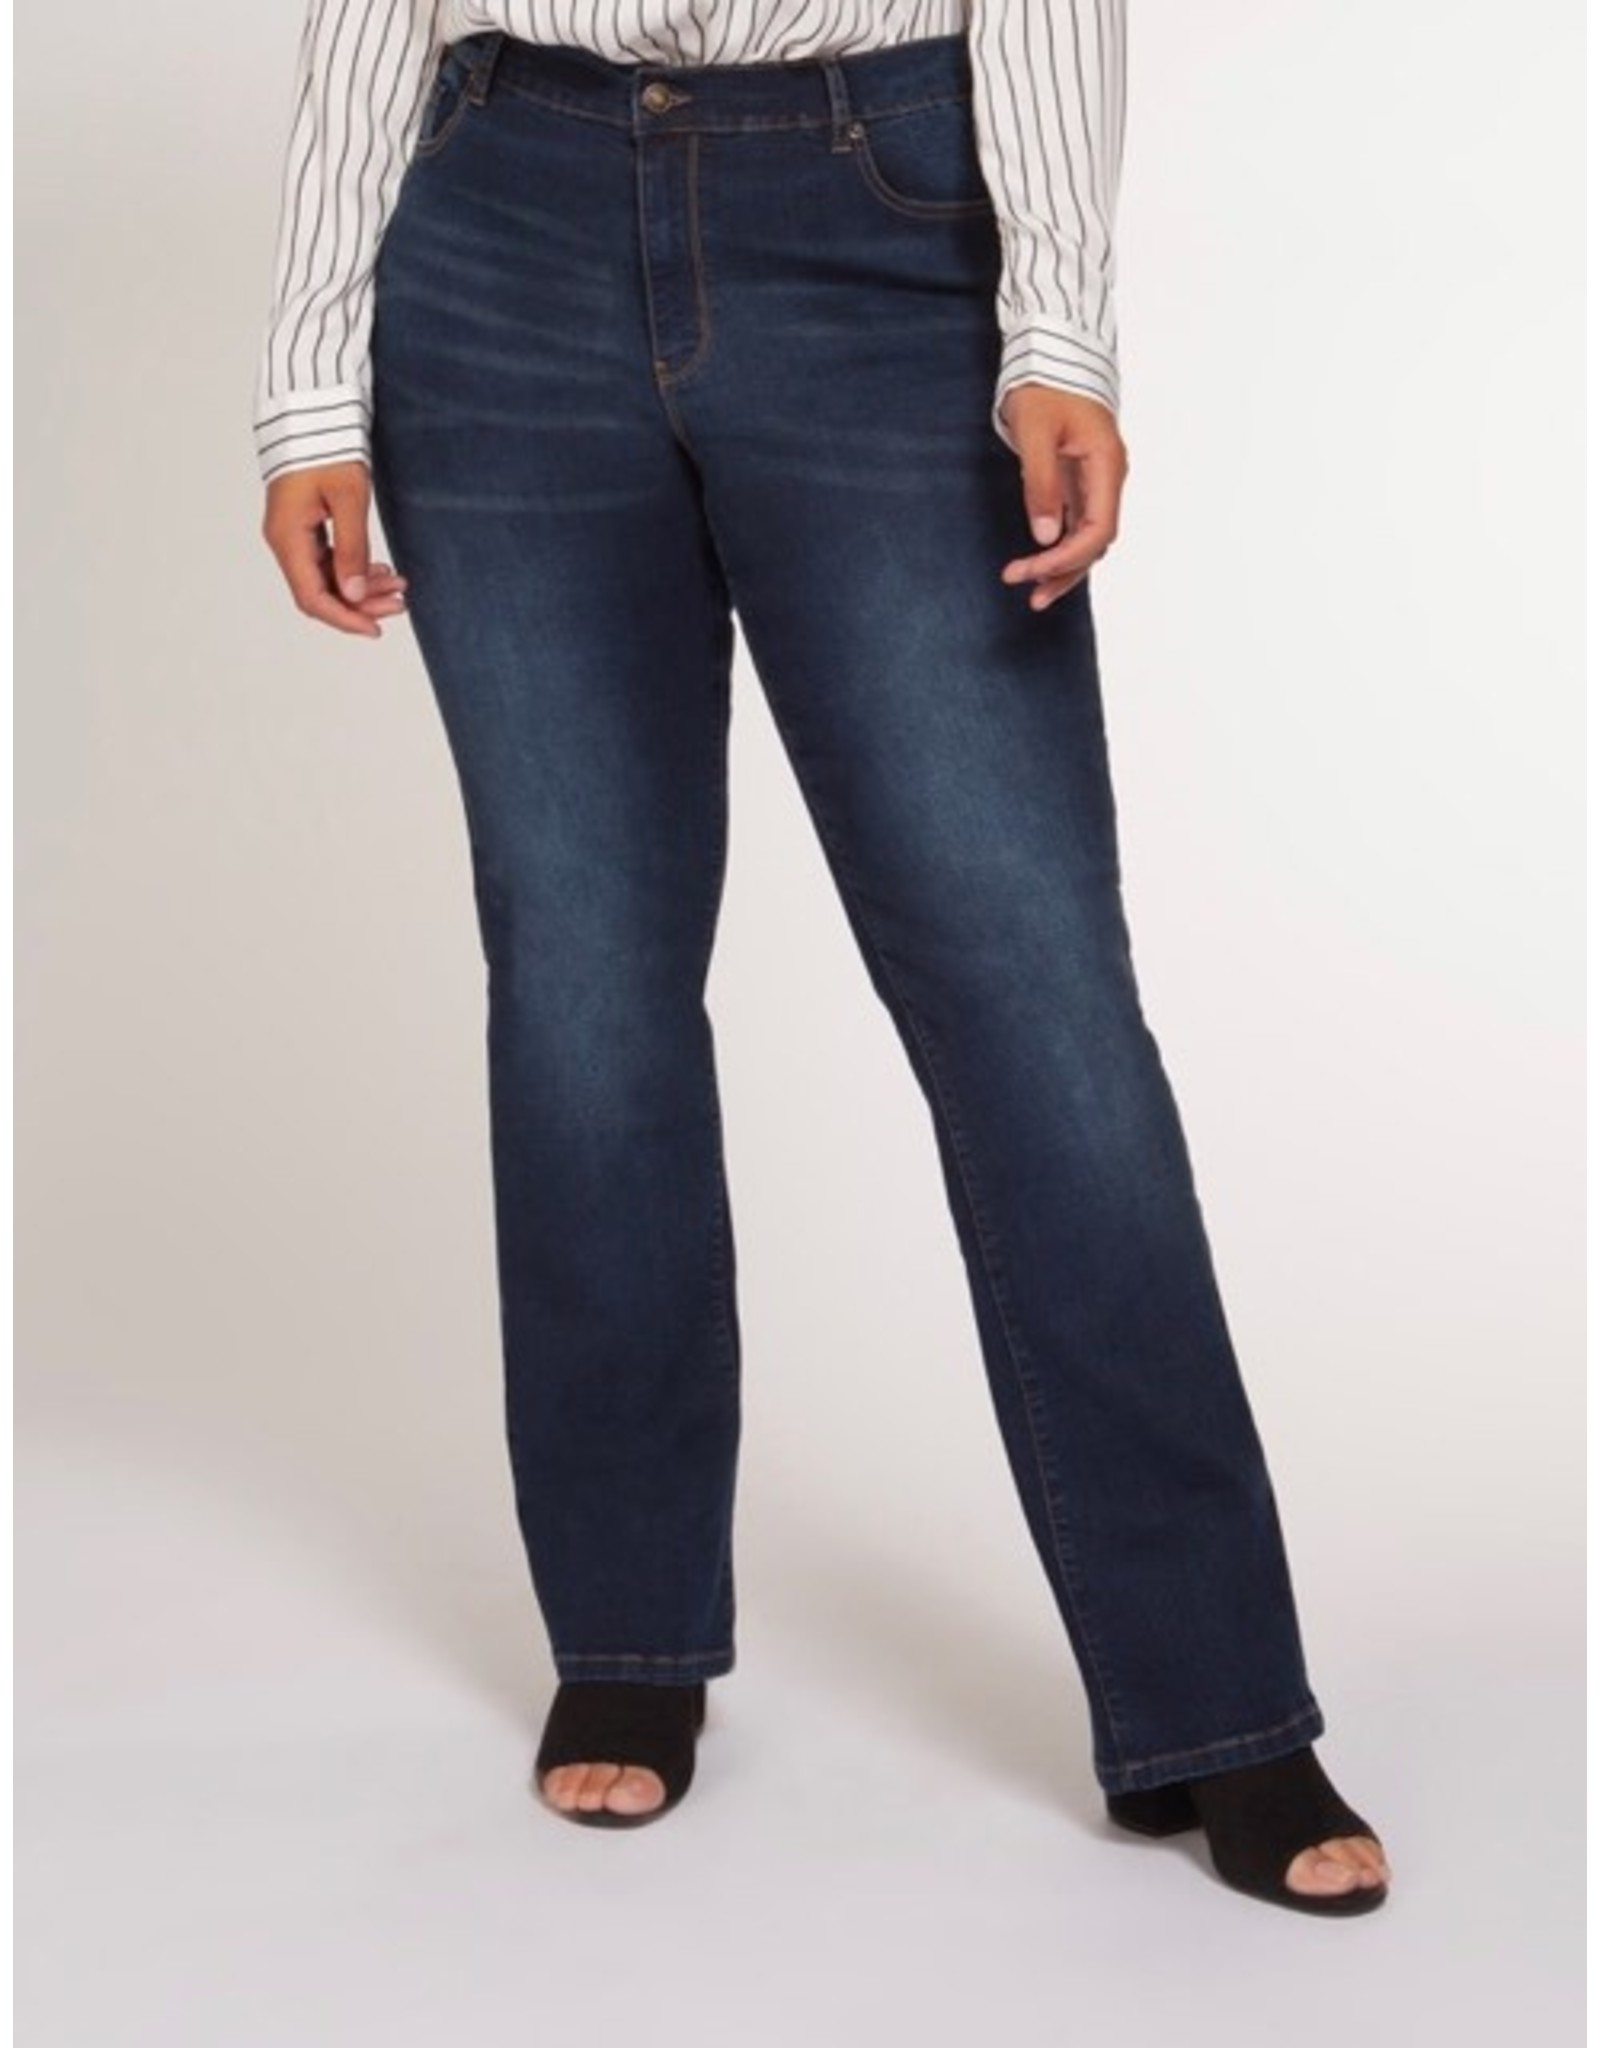 DEX PLUS DEX PLUS-JEANS EVASER-1572830DP